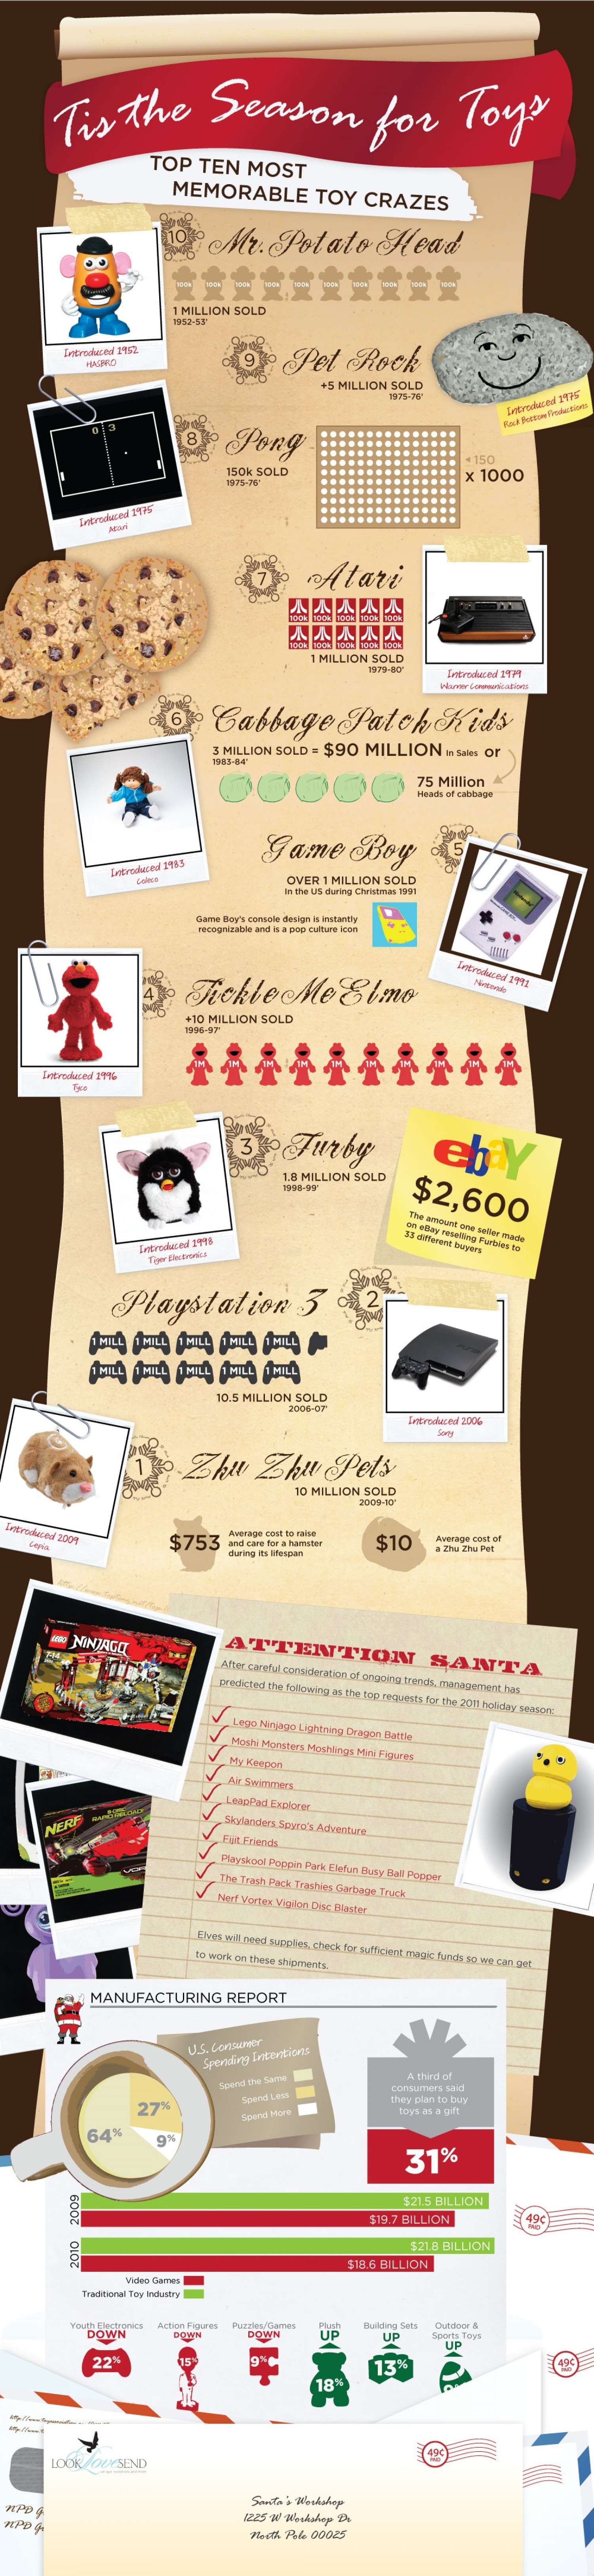 Tis The Season For Toys Infographic